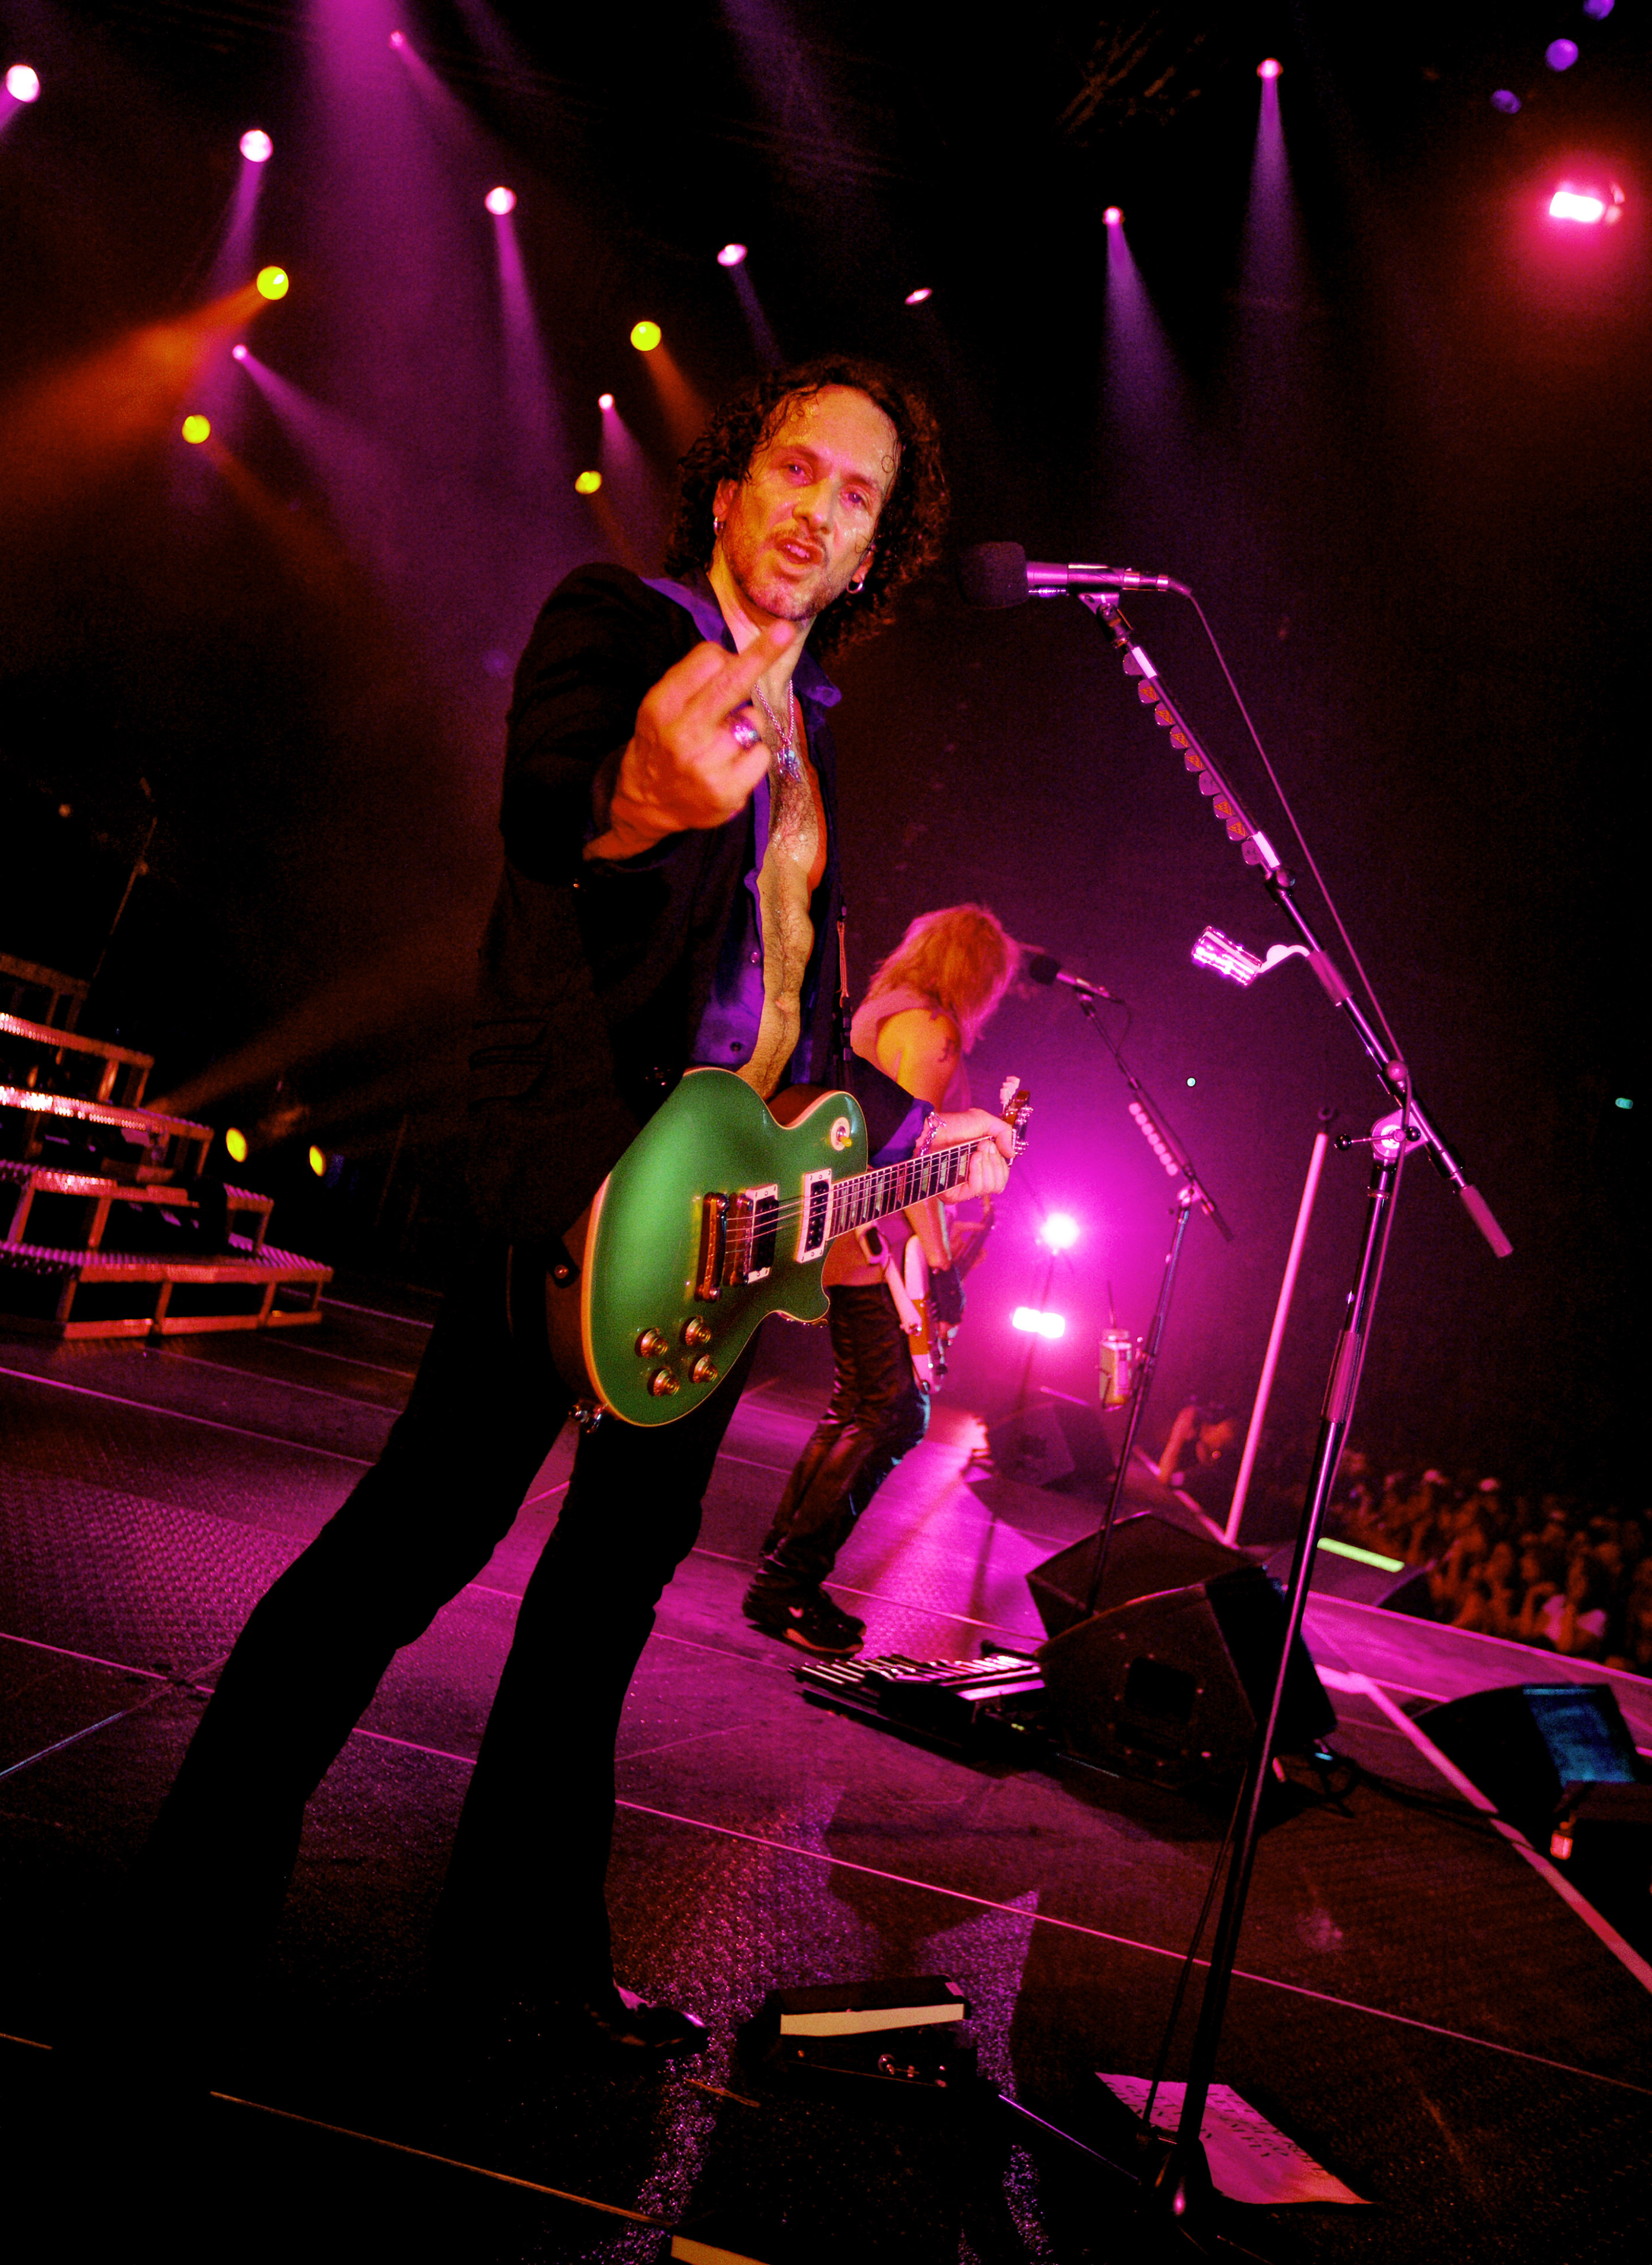 Vivian Campbell of Def Leppard Gateshead 2008 by Ash Newell